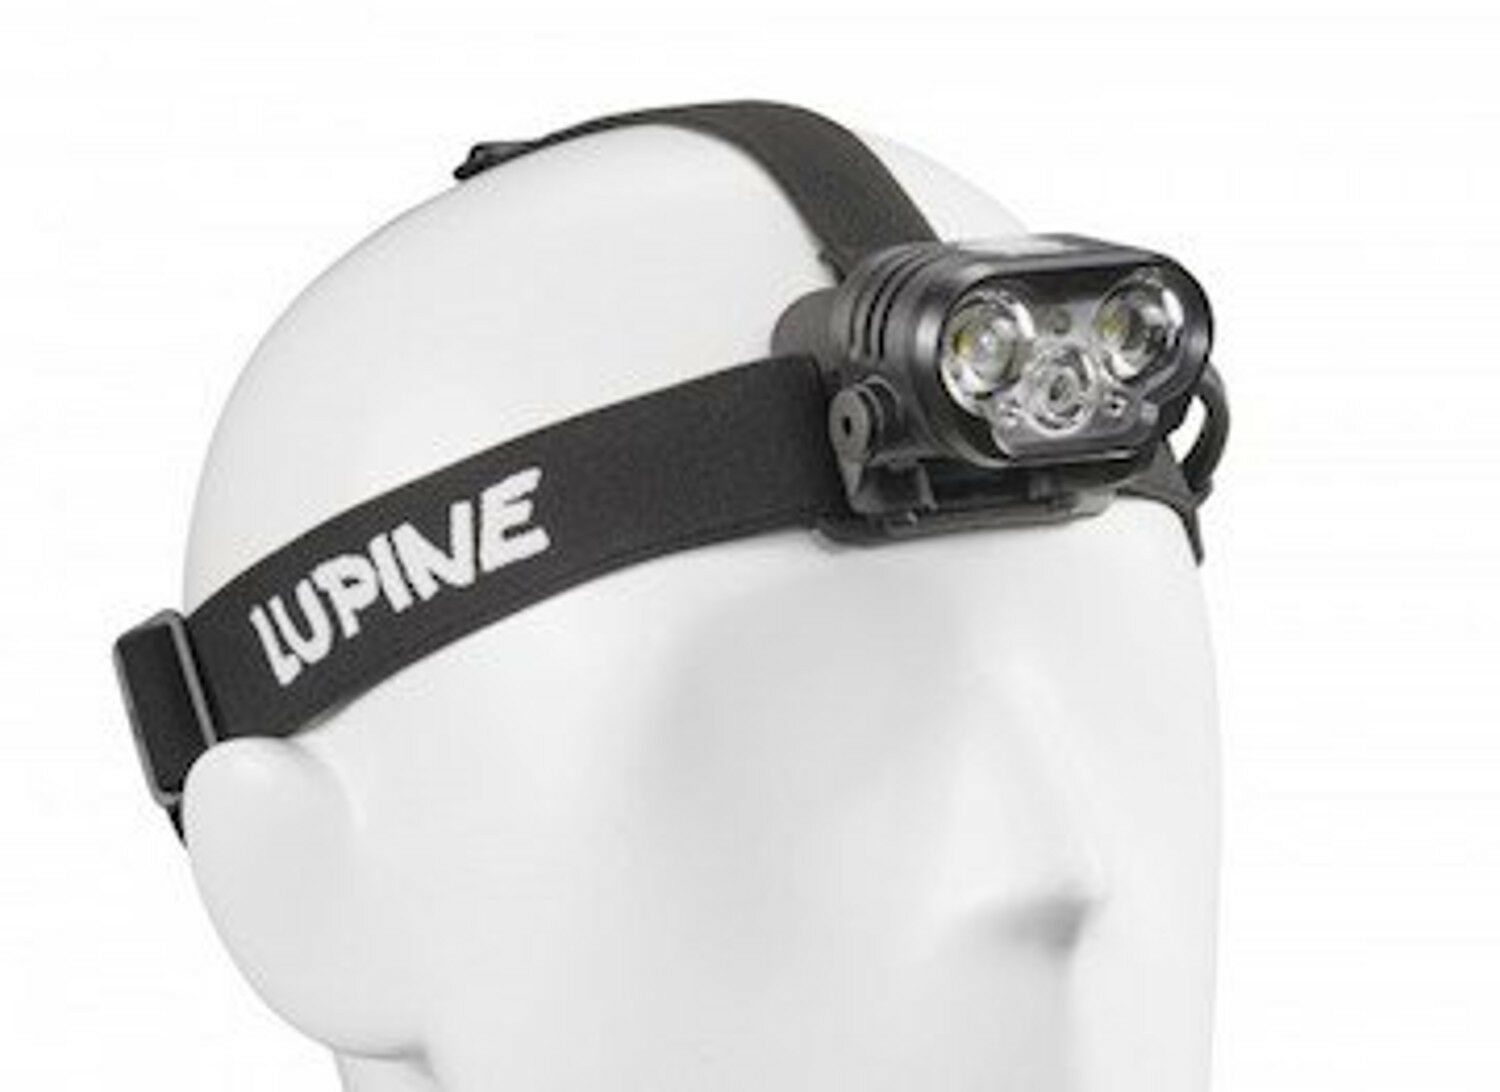 Lupine Lighting Systems Blika RX7 SmartCore Headlamp System 2100  Lumens NEW  sale outlet